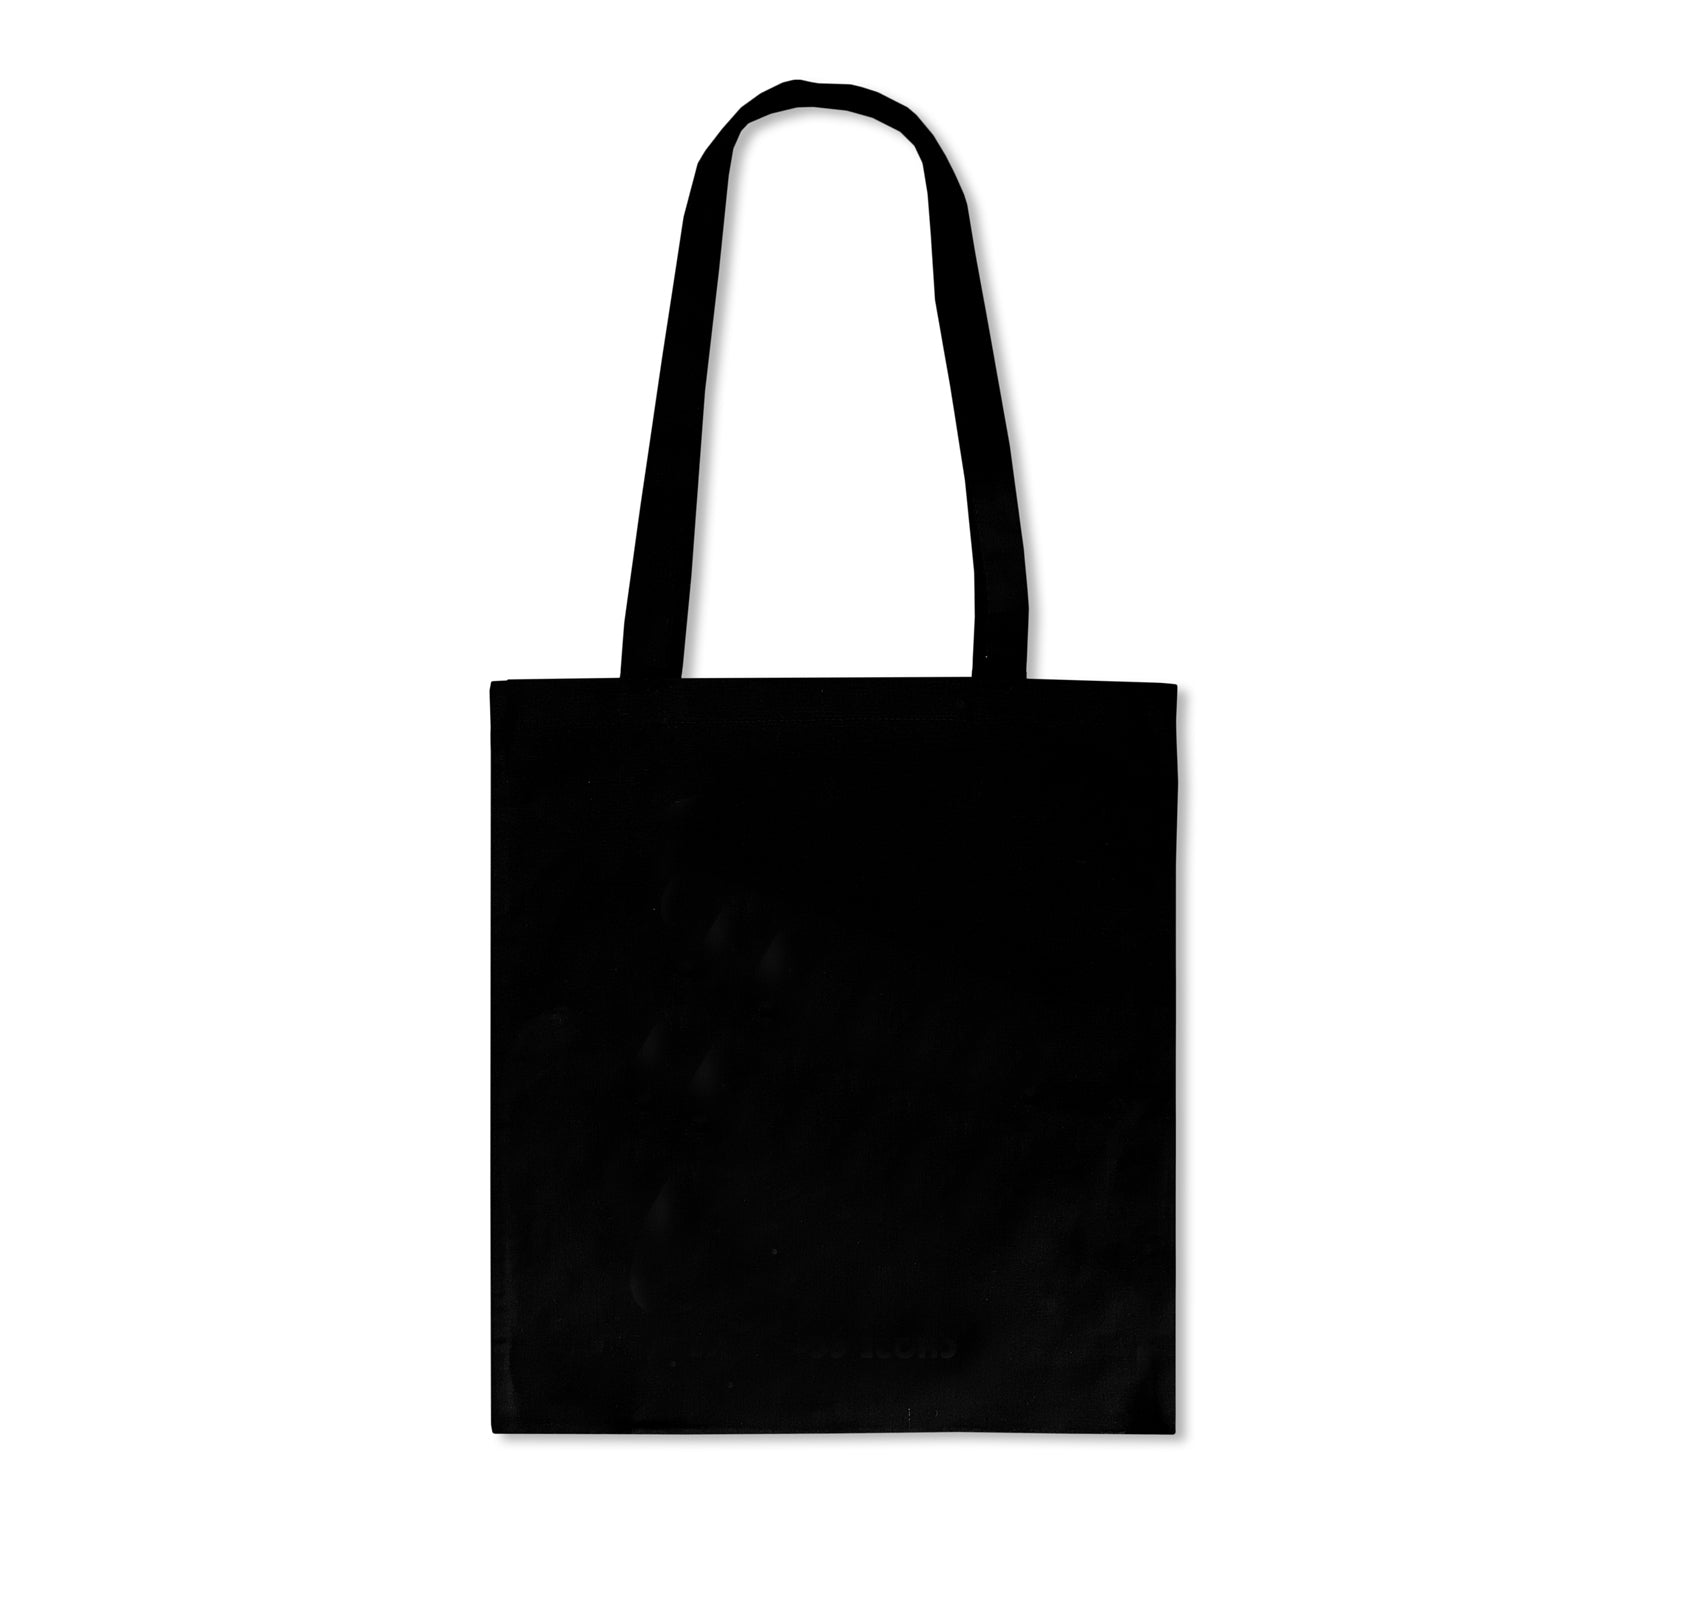 CHOSE COMMUNE TOTE BAG by Alexandra Catiere